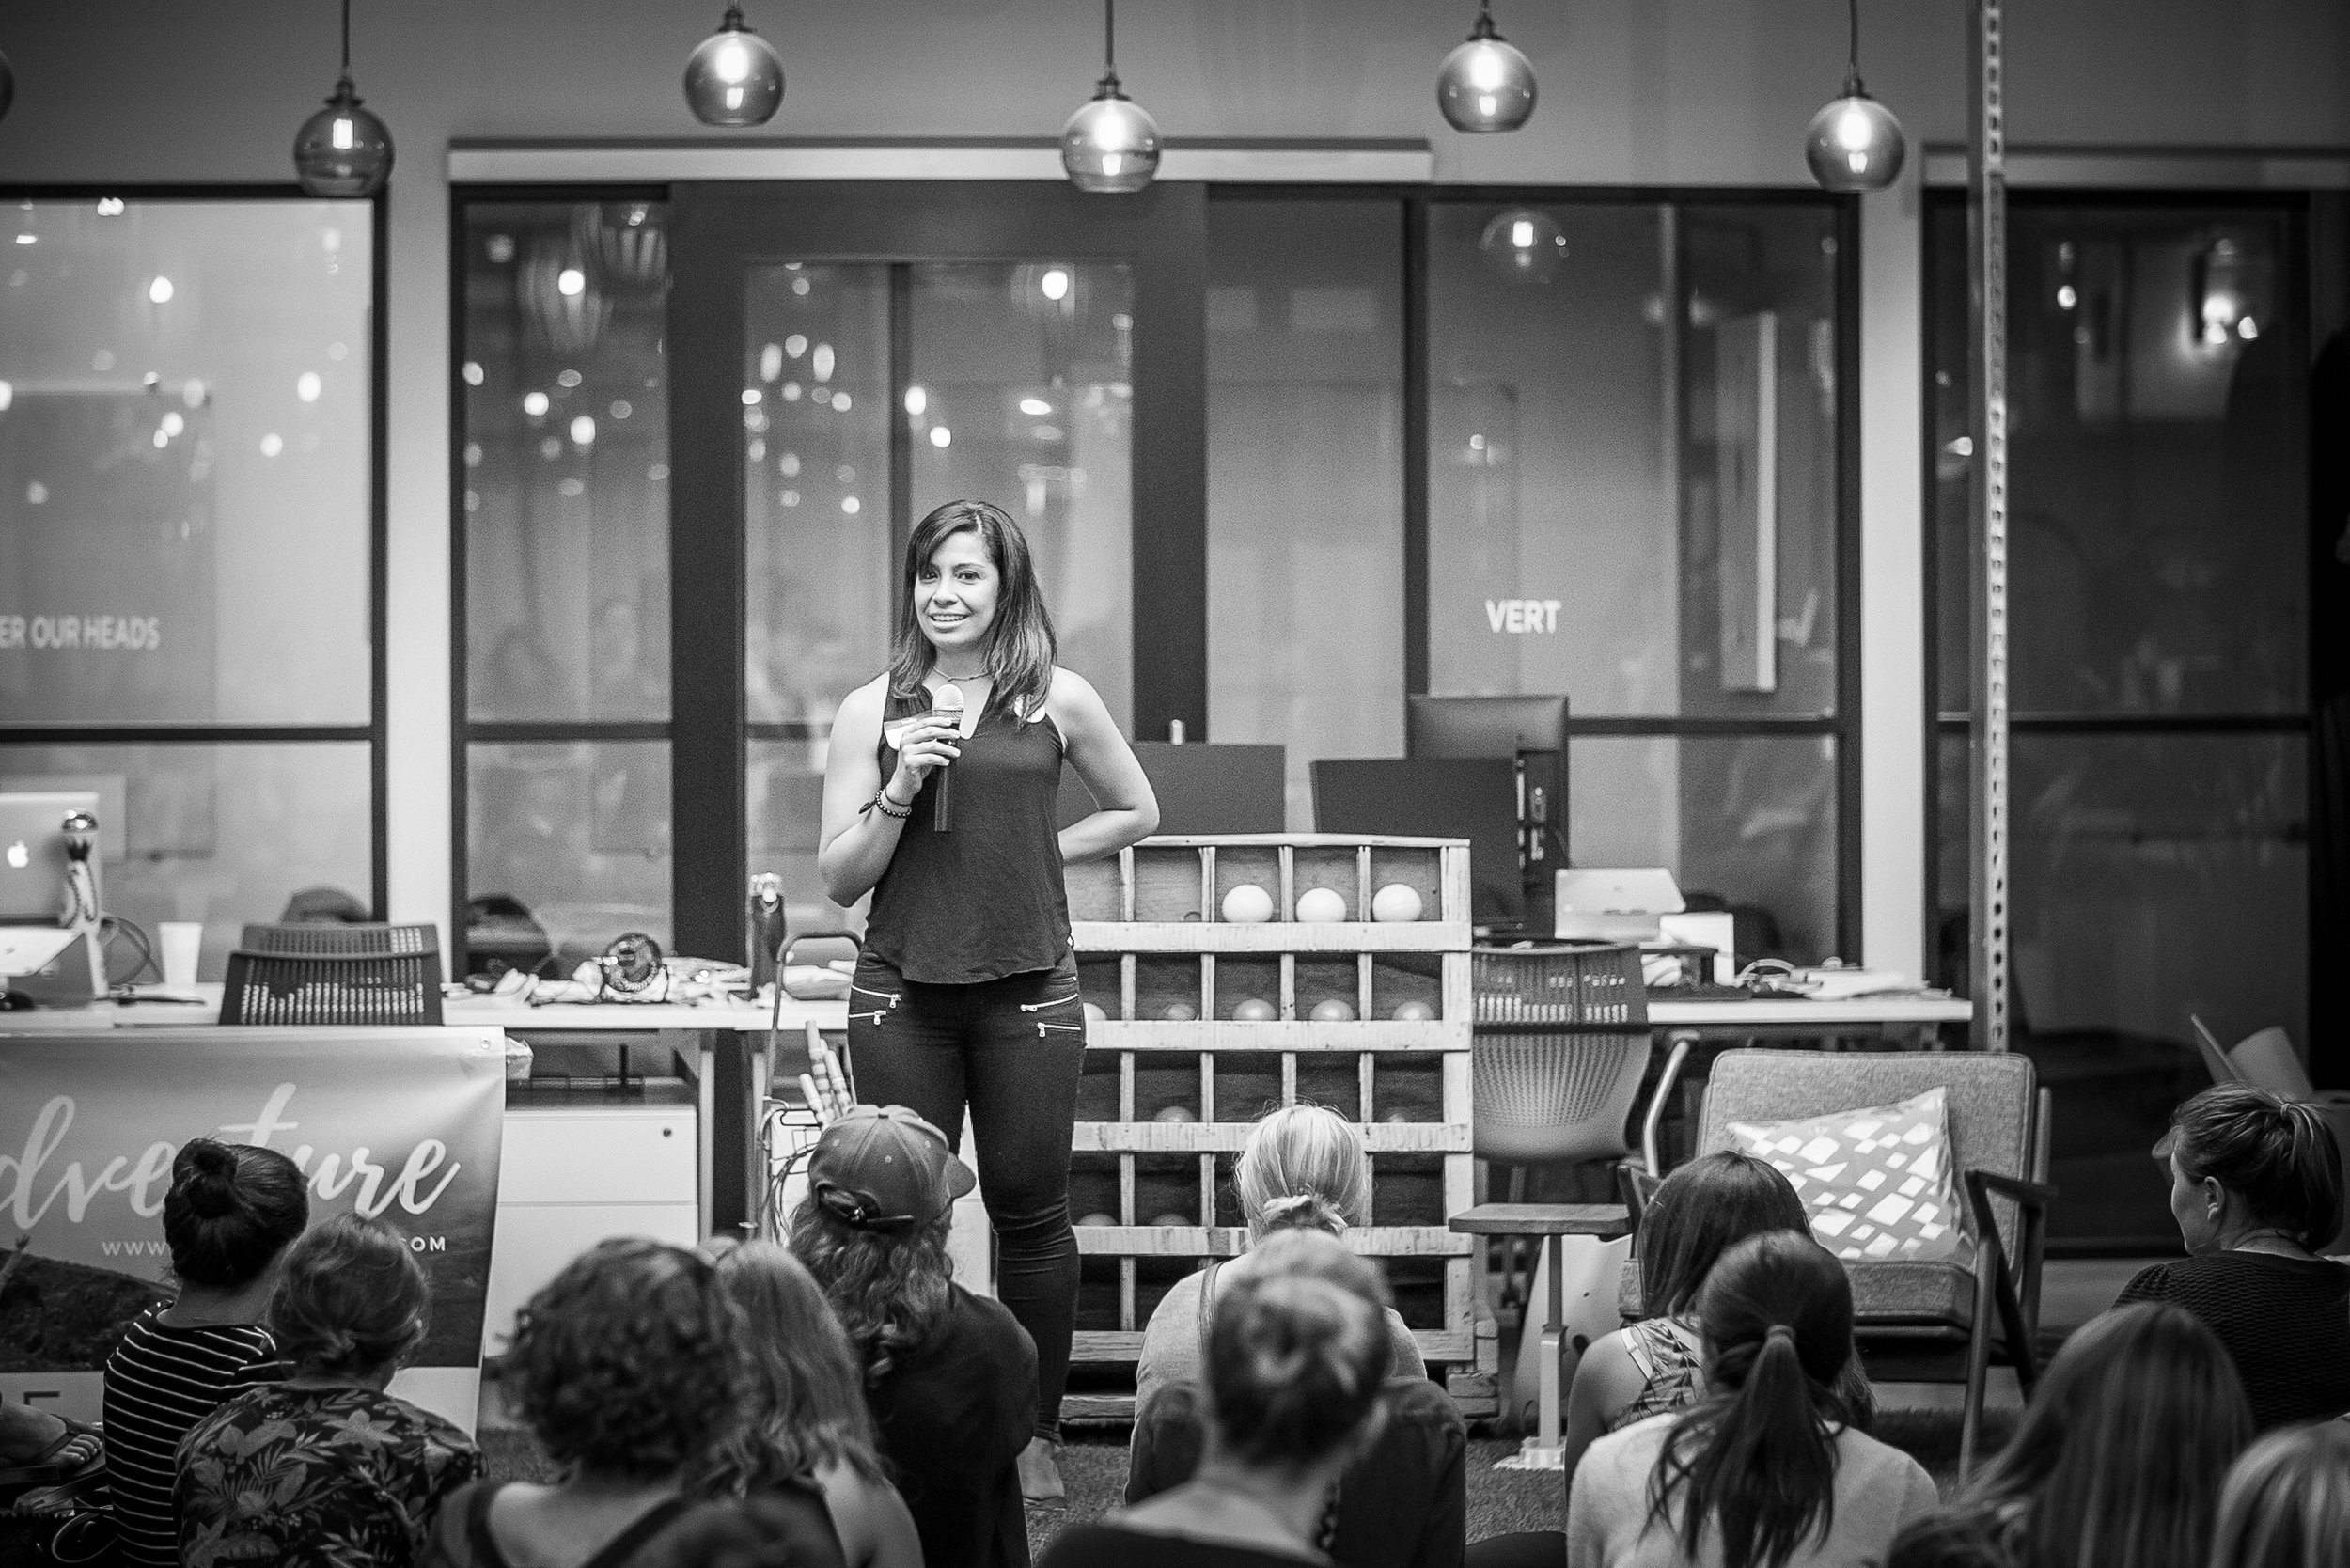 Georgina speaking at a She Ventures event in San Francisco.